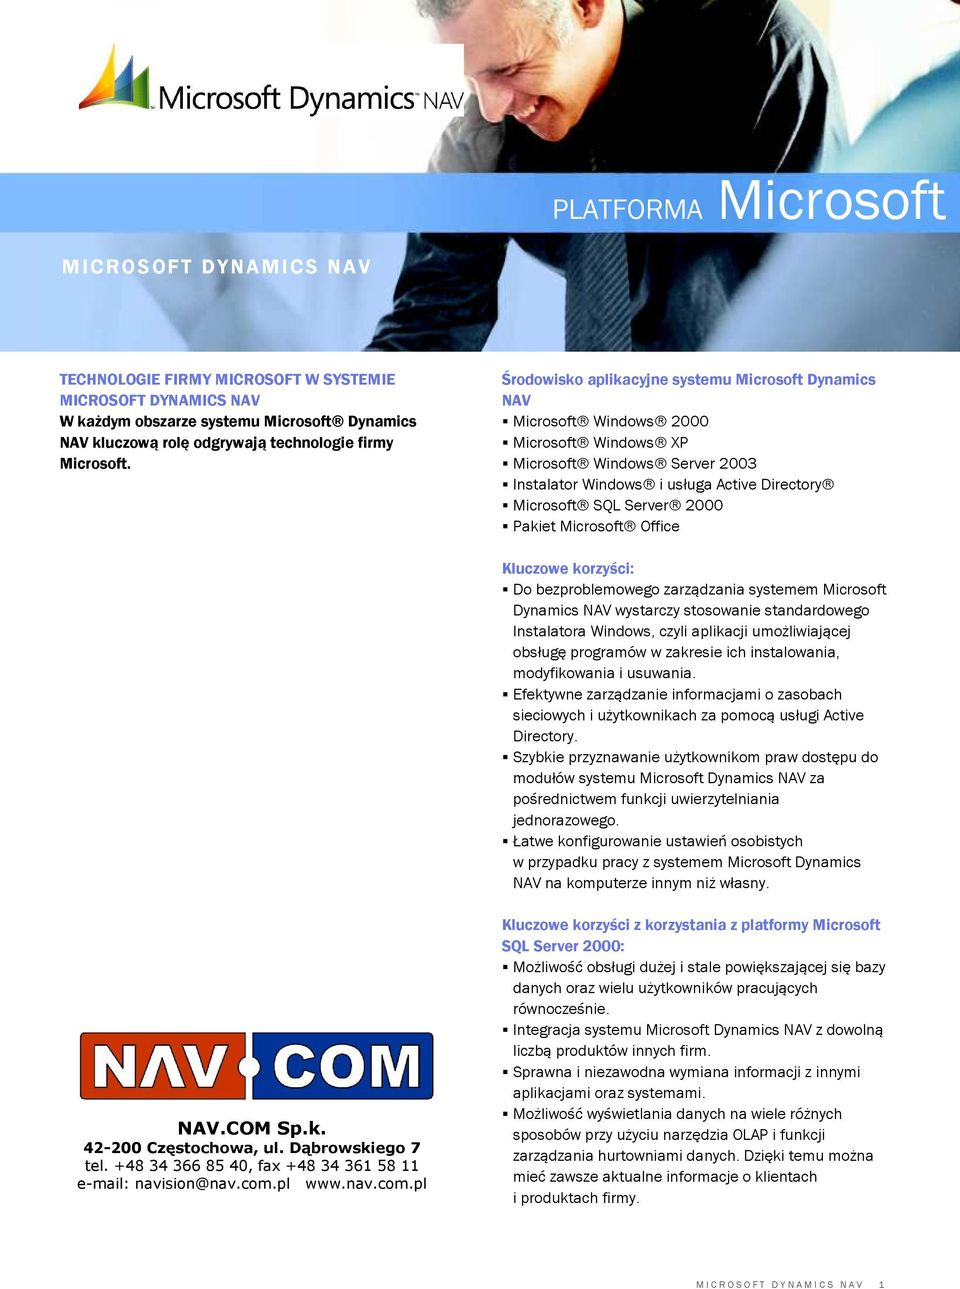 Środowisko aplikacyjne systemu Microsoft Dynamics NAV Microsoft Windows 2000 Microsoft Windows XP Microsoft Windows Server 2003 Instalator Windows i usługa Active Directory Microsoft SQL Server 2000